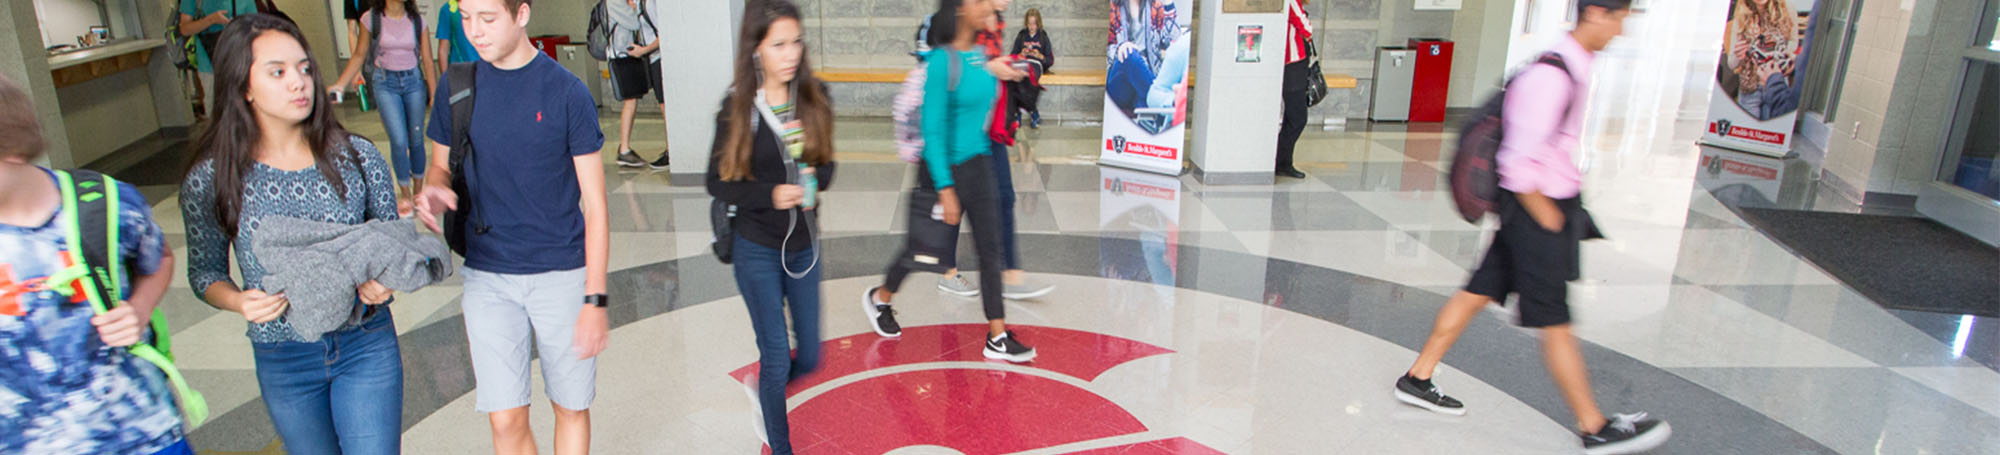 Students walk through front entrance with the knight head on the floor.